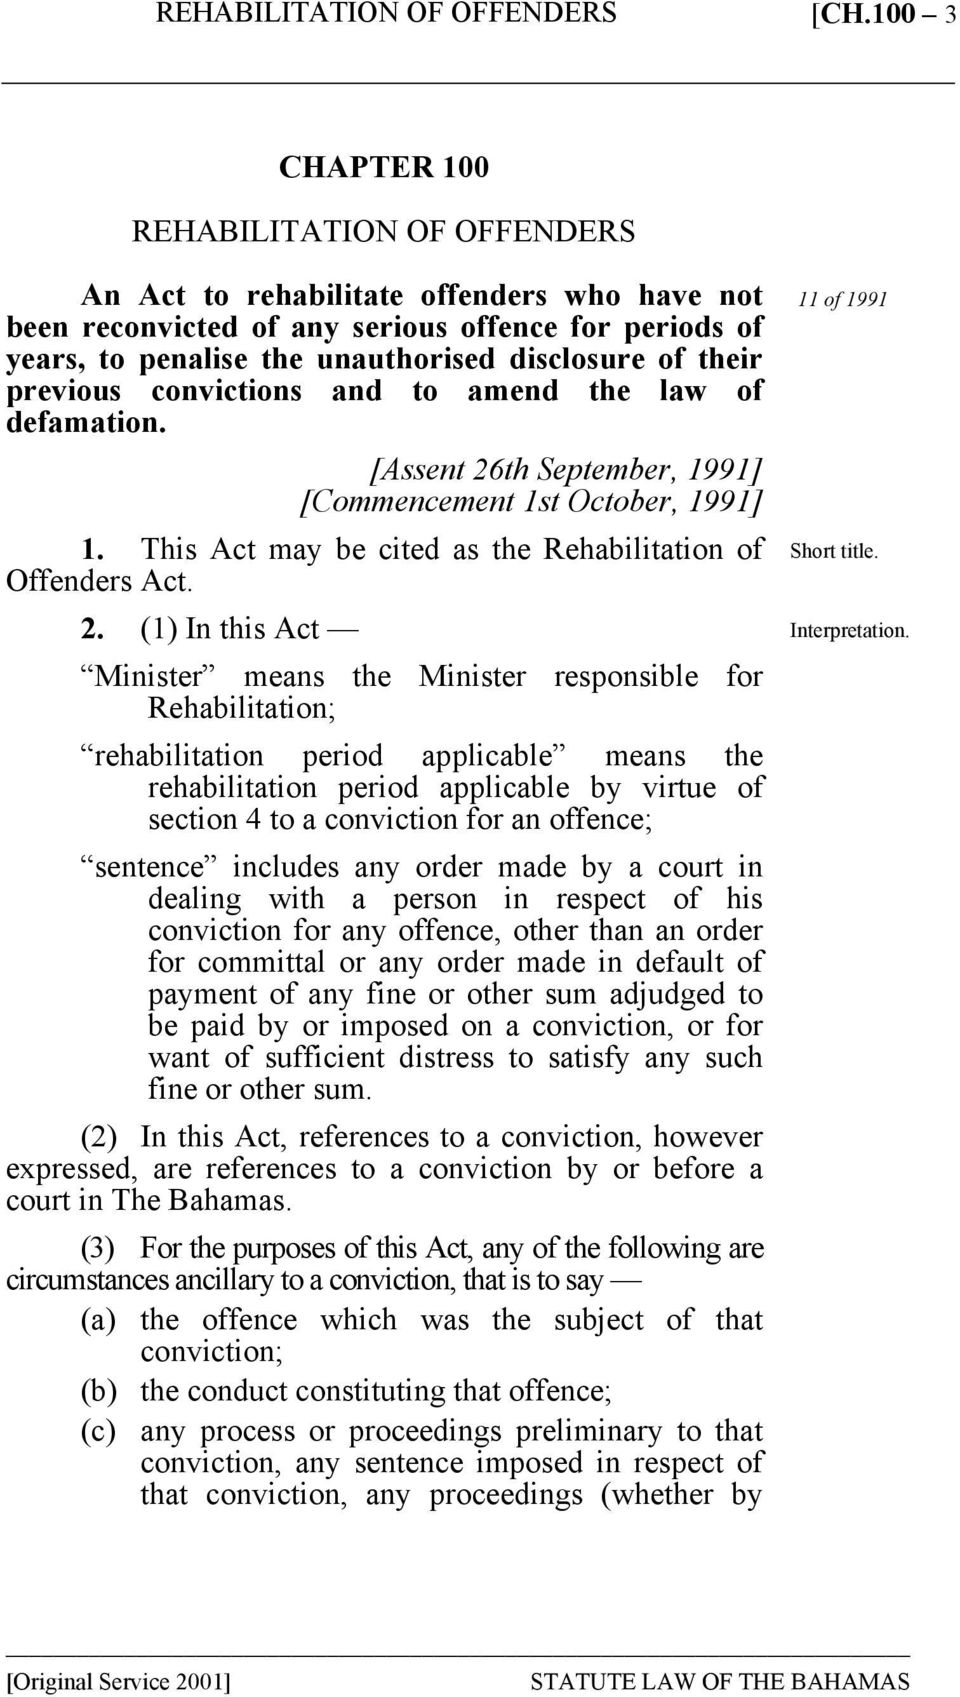 th September, 1991] [Commencement 1st October, 1991] 1. This Act may be cited as the Rehabilitation of Offenders Act. 2.